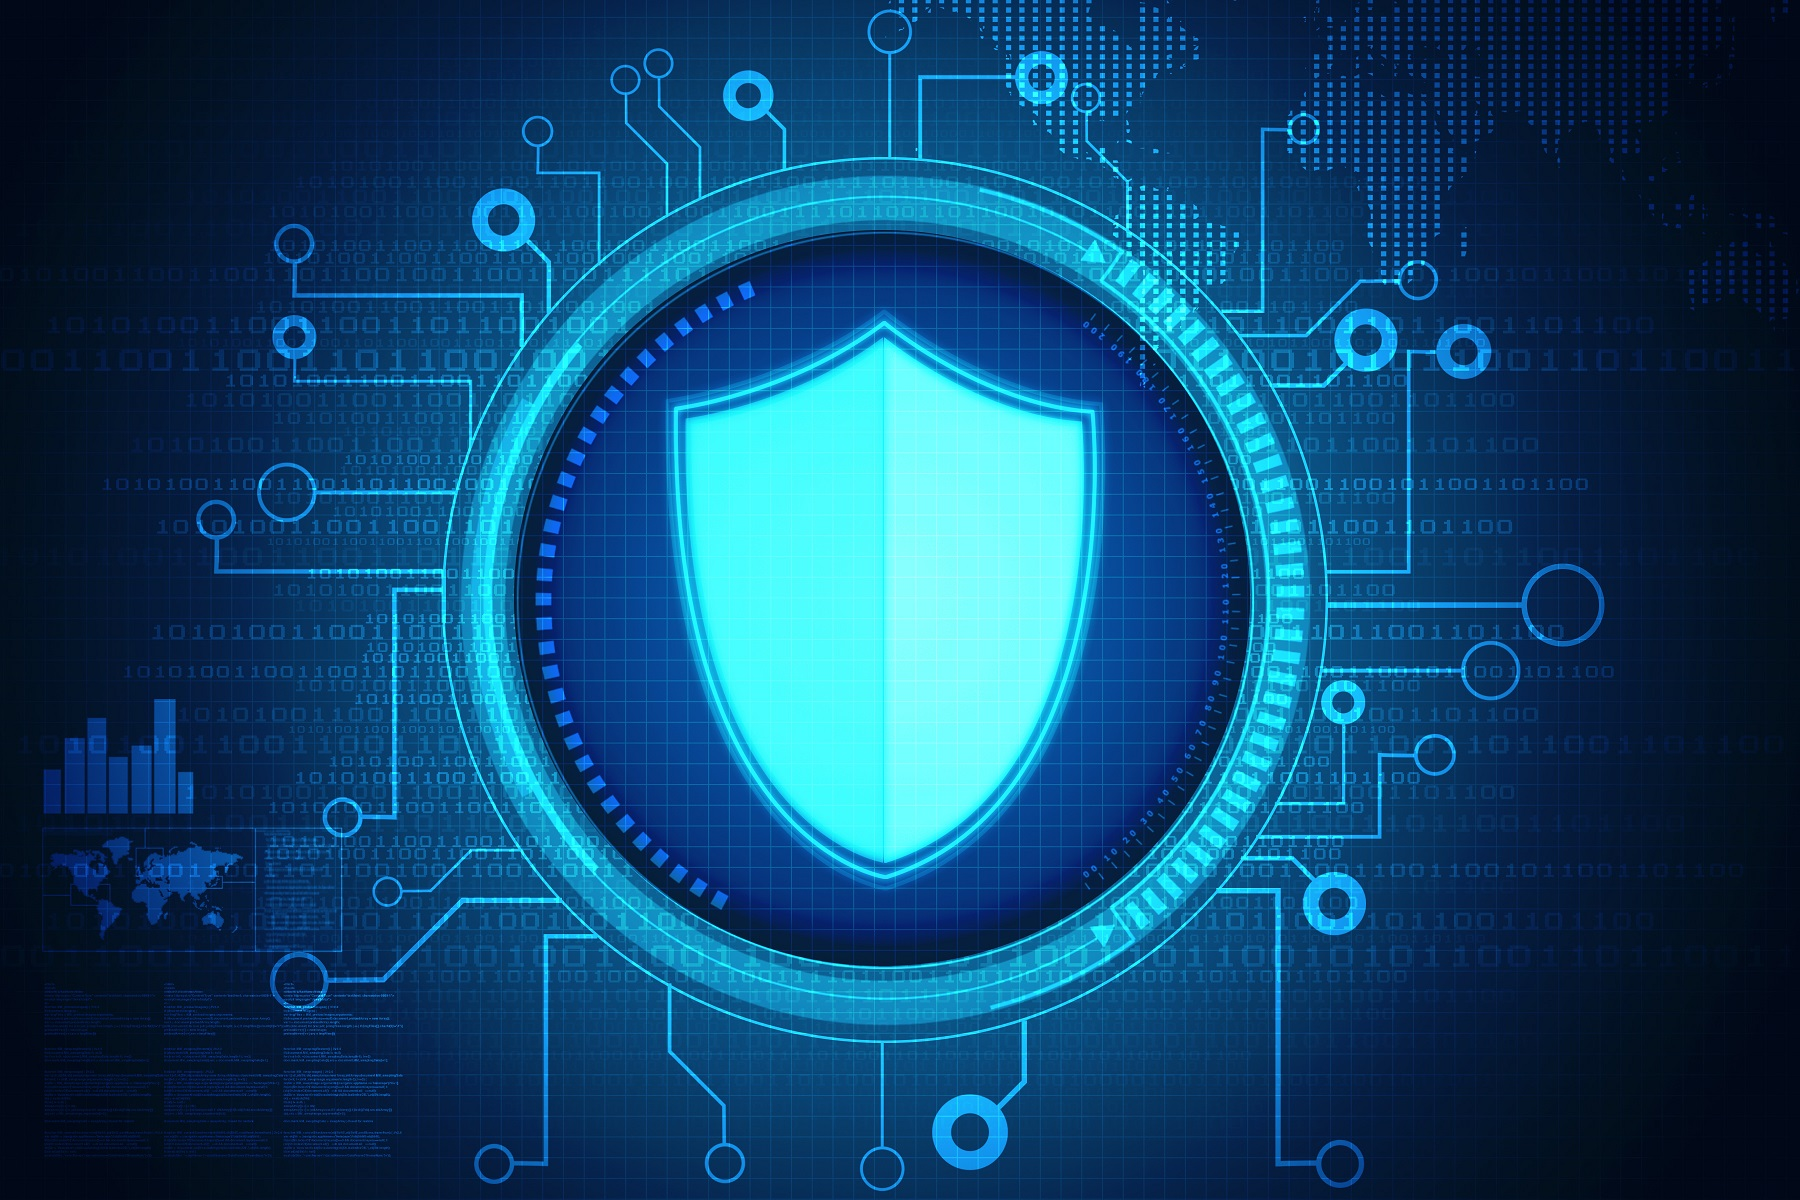 c nachelle digital media and cyber Residential security keep your family safe, and your home secure, with top-of-the-line security products and solutions from digital media and security of virginia.